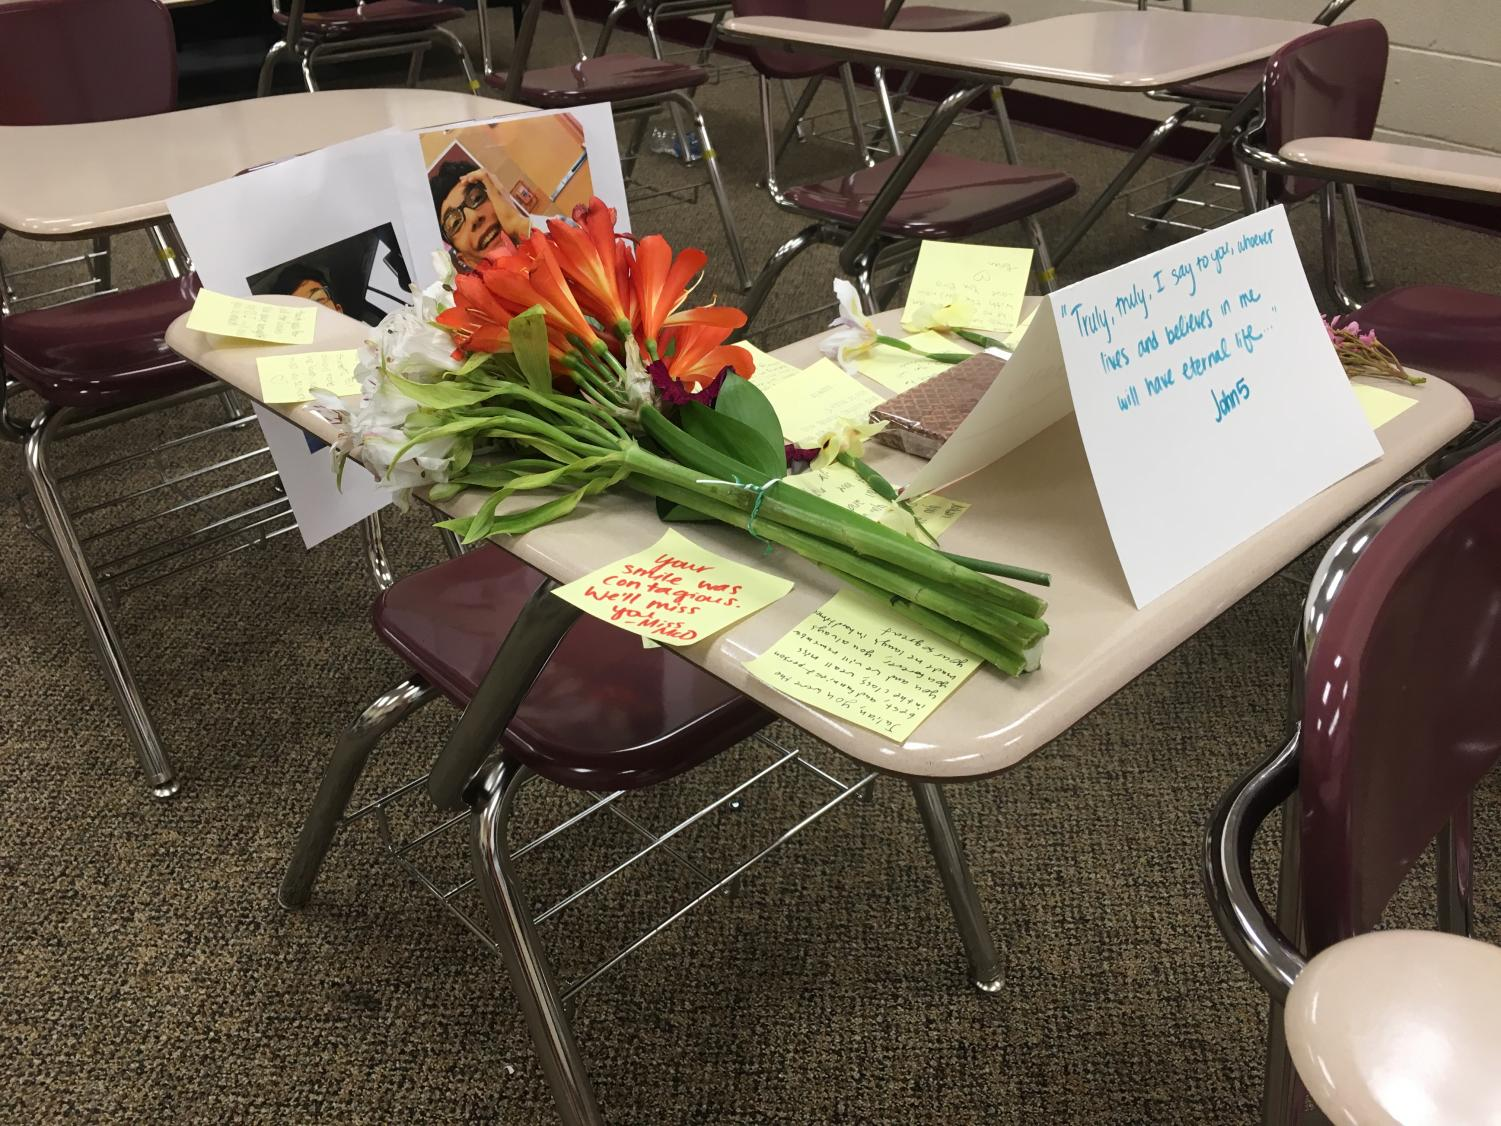 The students in one of Julian's classes set up a memorial at his desk, proving he will be missed by all that knew him.